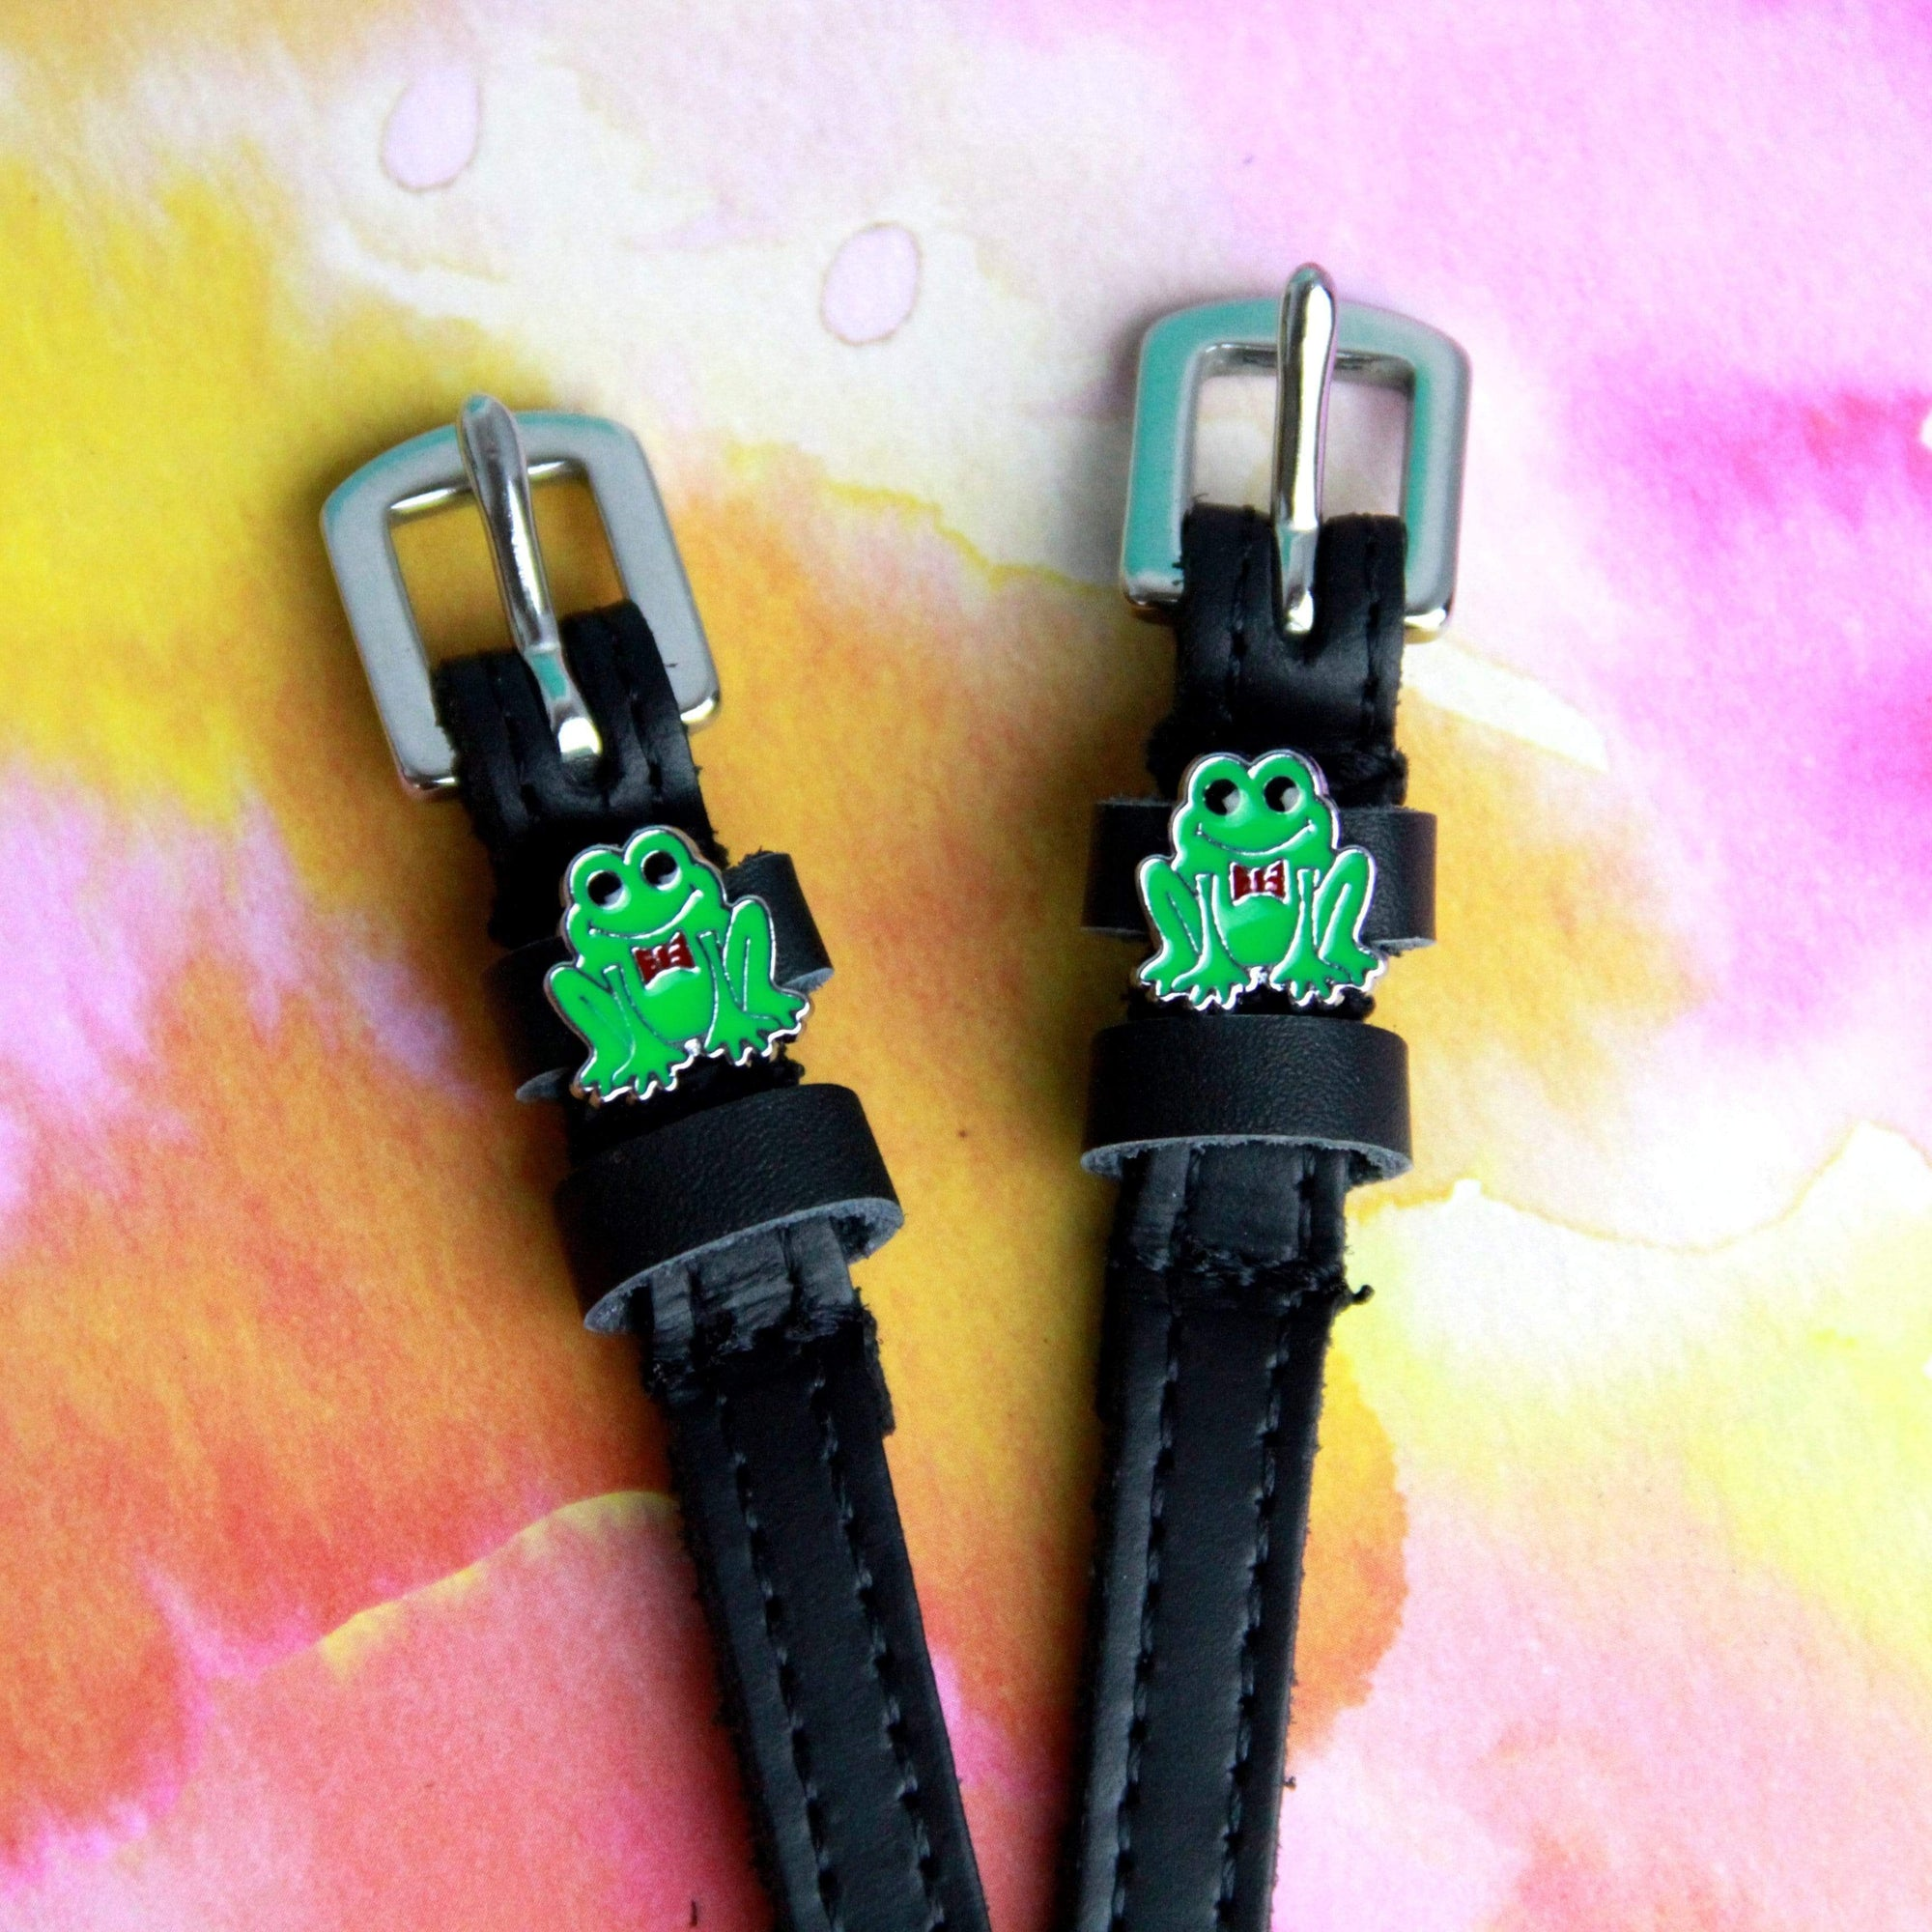 ManeJane Black Spur Straps Frogger Spur Straps equestrian team apparel online tack store mobile tack store custom farm apparel custom show stable clothing equestrian lifestyle horse show clothing riding clothes horses equestrian tack store